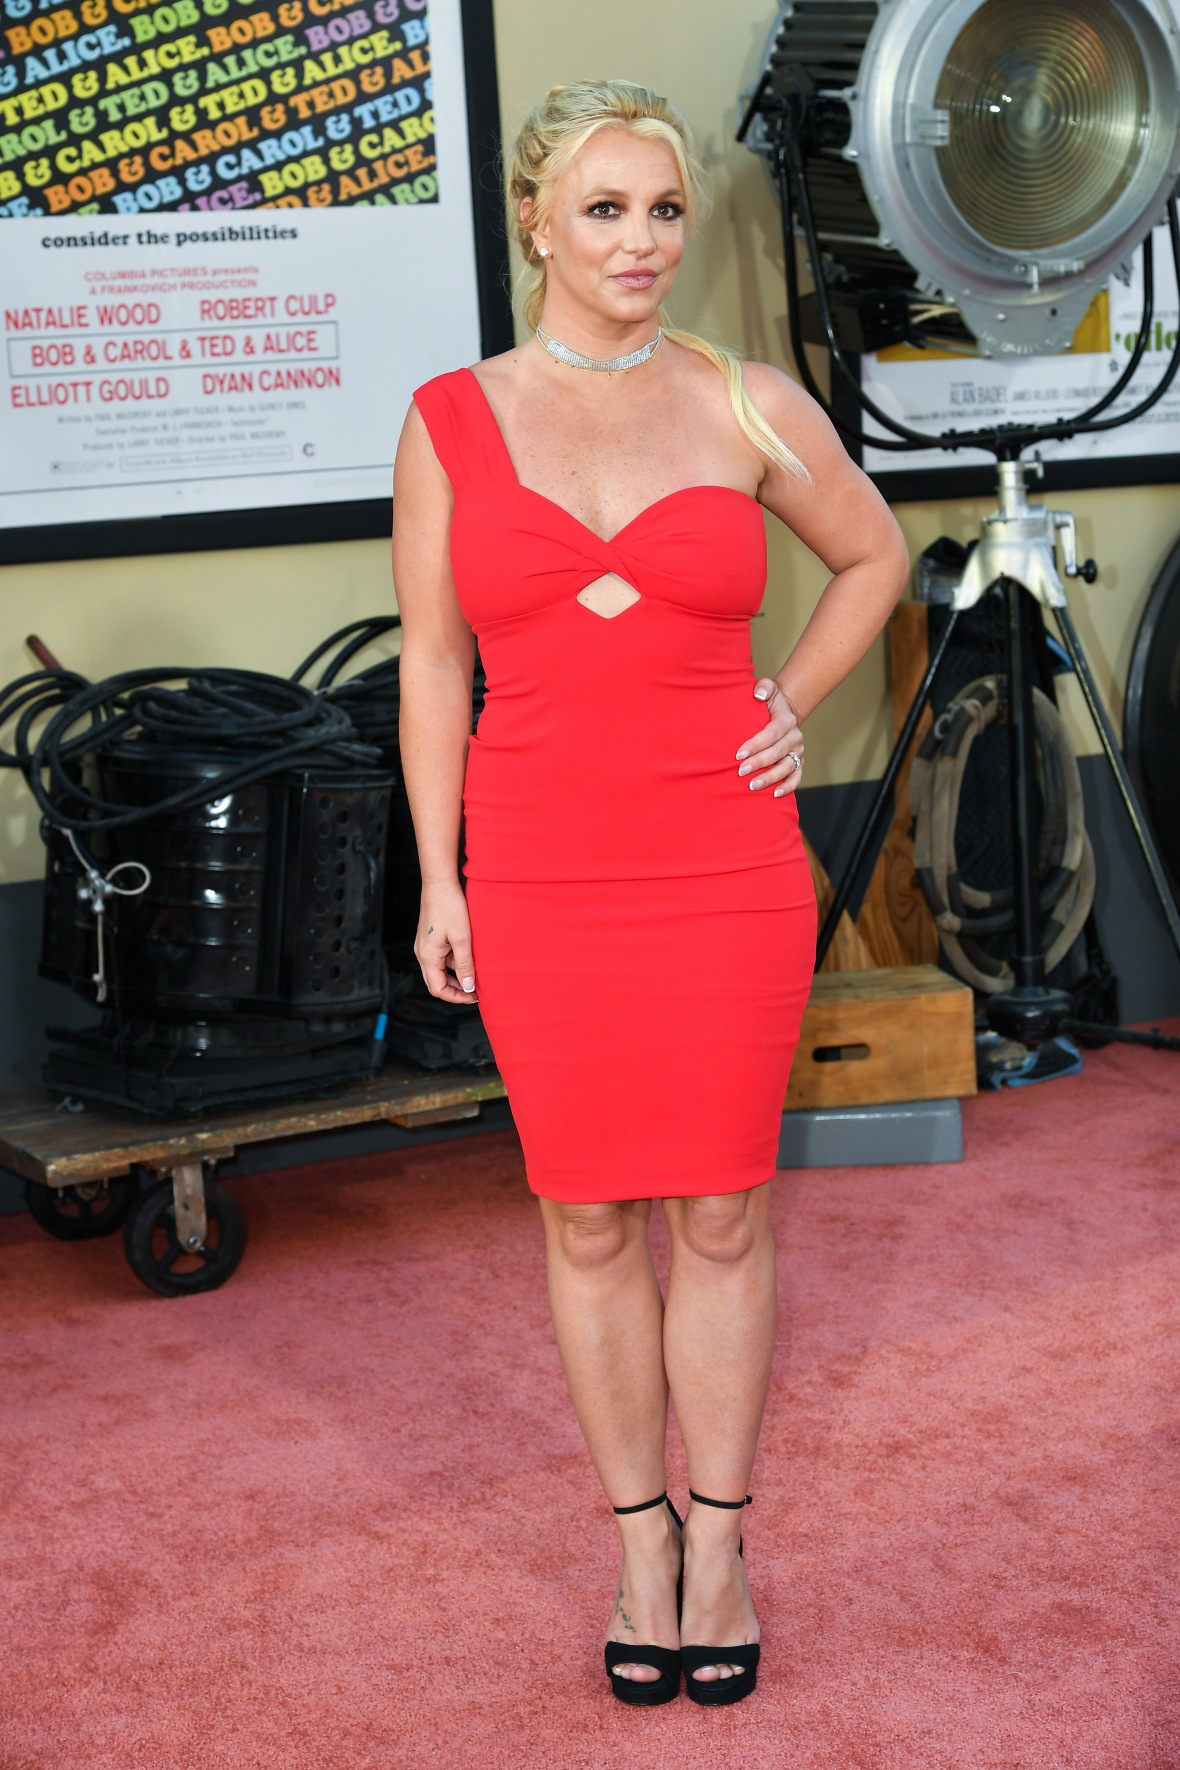 Britney Spears in Red Dress at Event